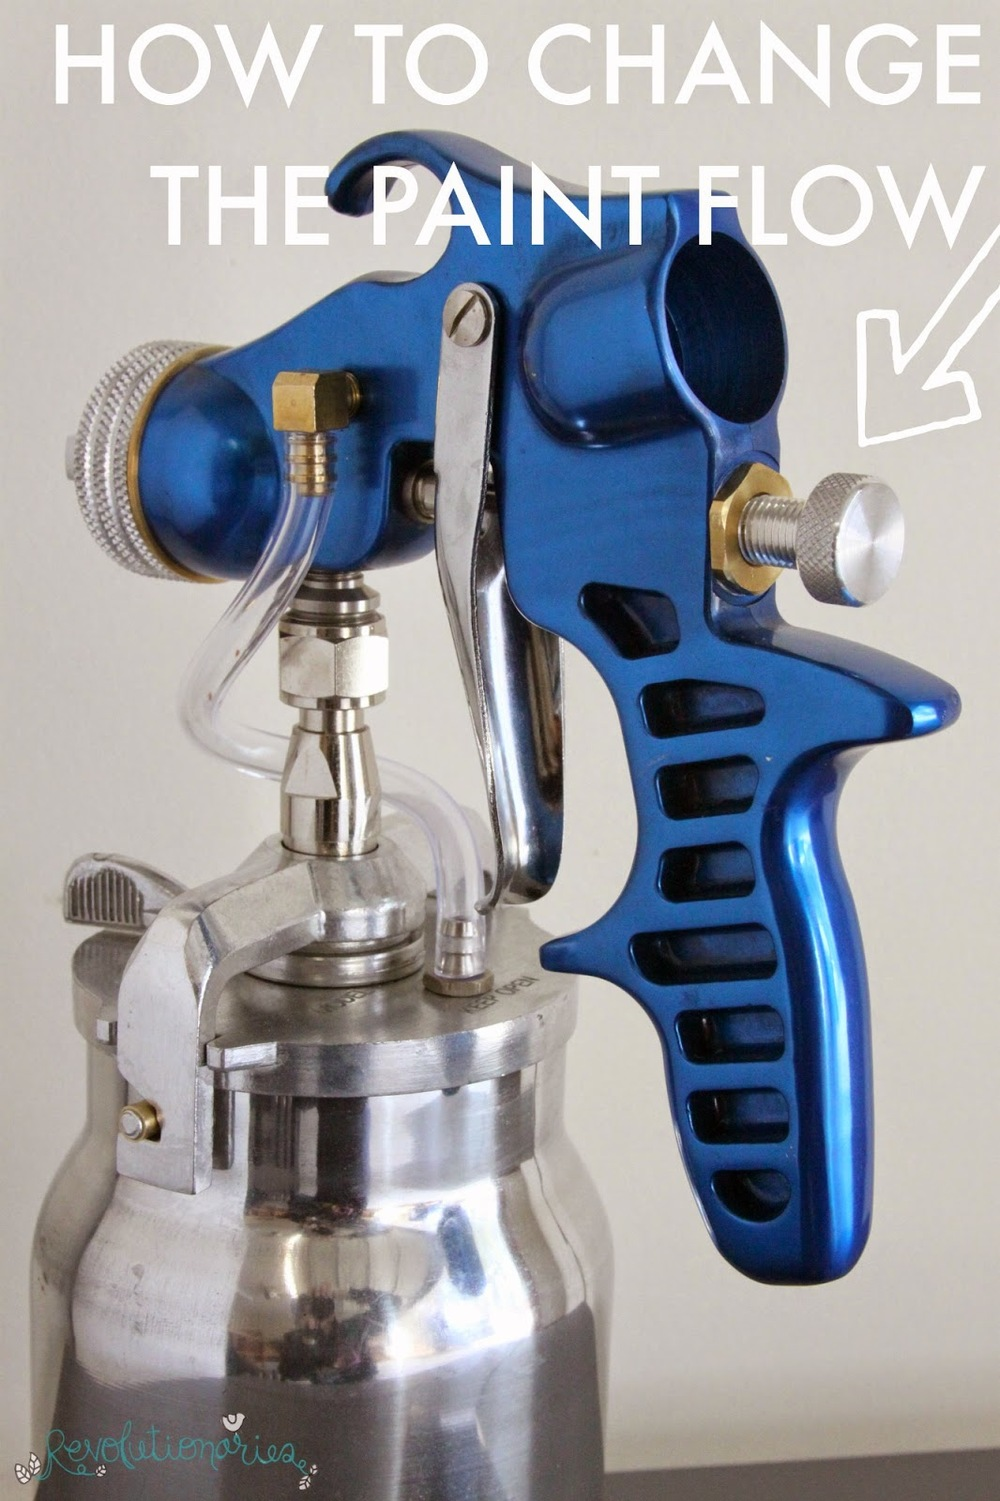 Earlex HV5500 Spray Station Review & Buffet Before and After!